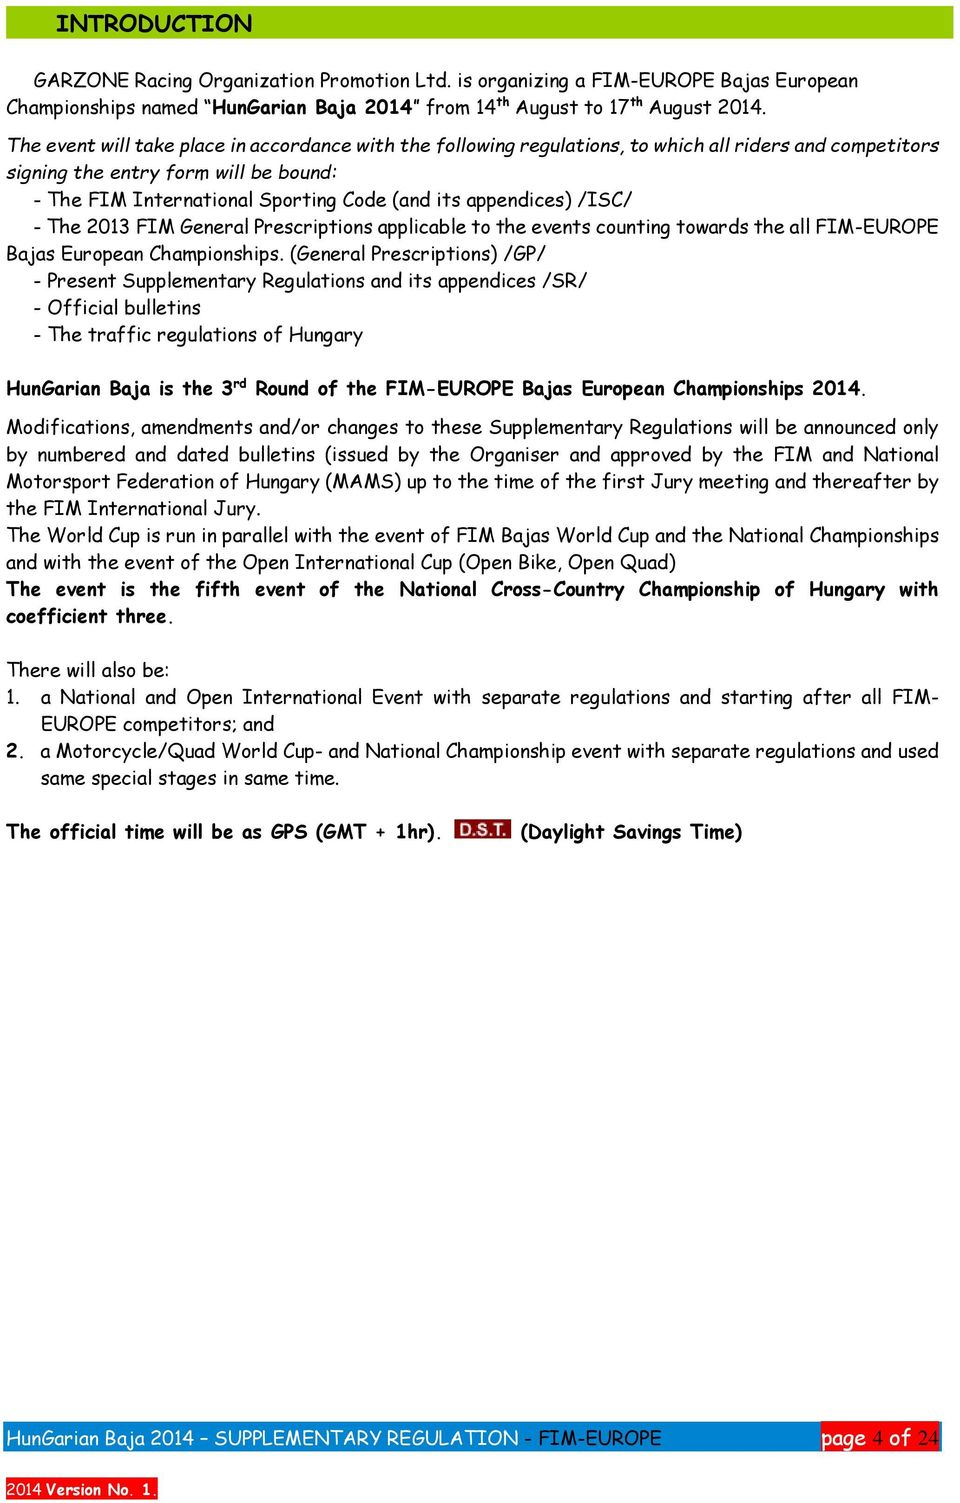 appendices) /ISC/ - The 2013 FIM General Prescriptions applicable to the events counting towards the all FIM-EUROPE Bajas European Championships.